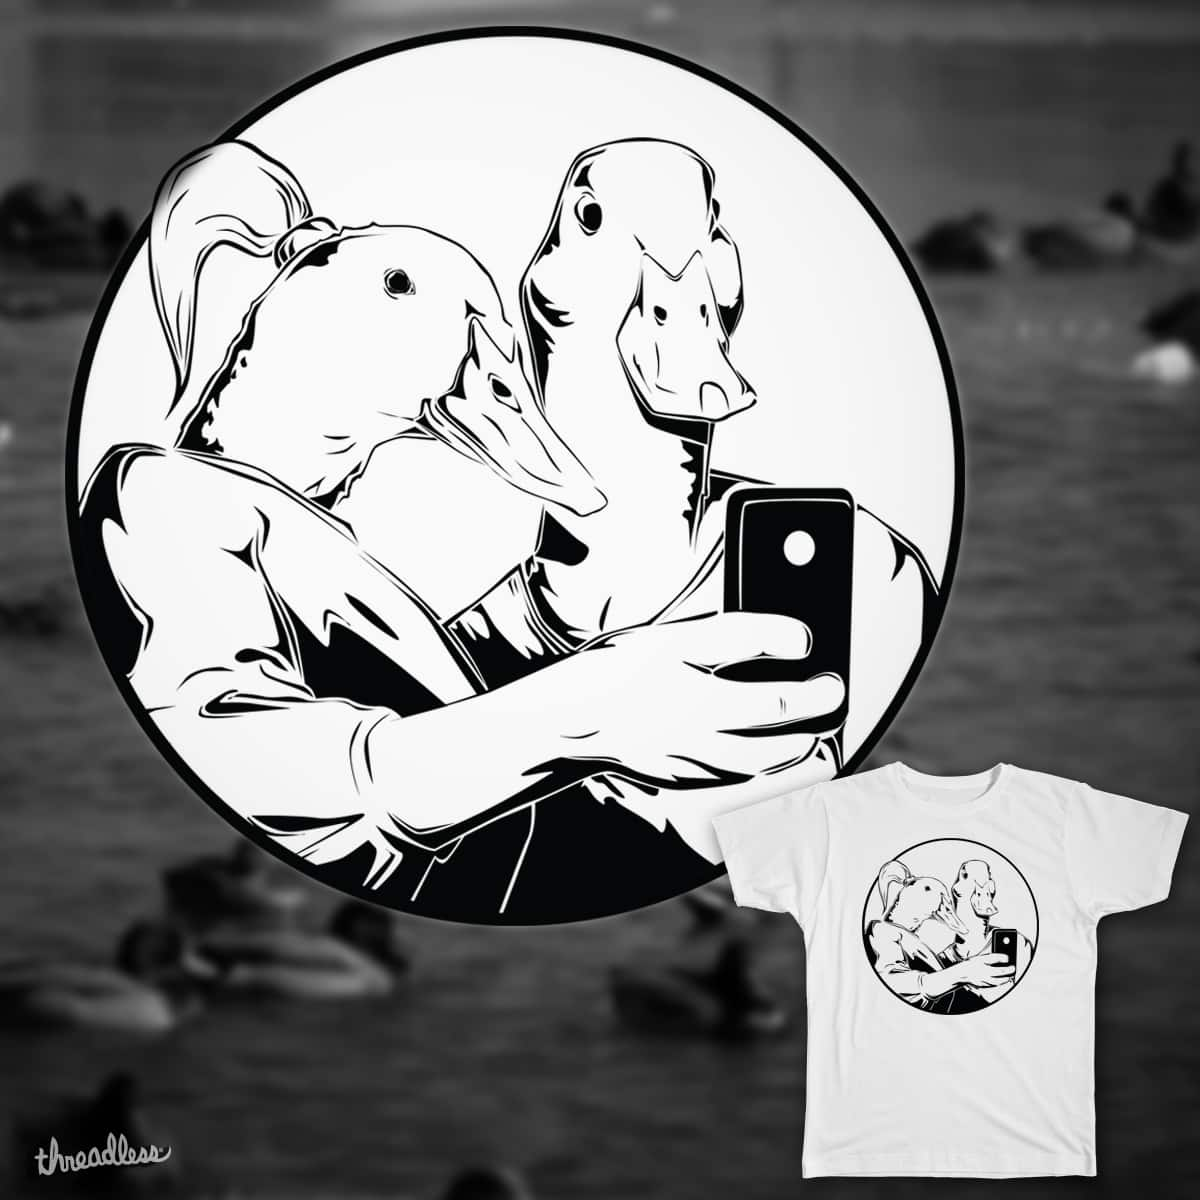 Duck Face in its Purest Form by drawnsean on Threadless